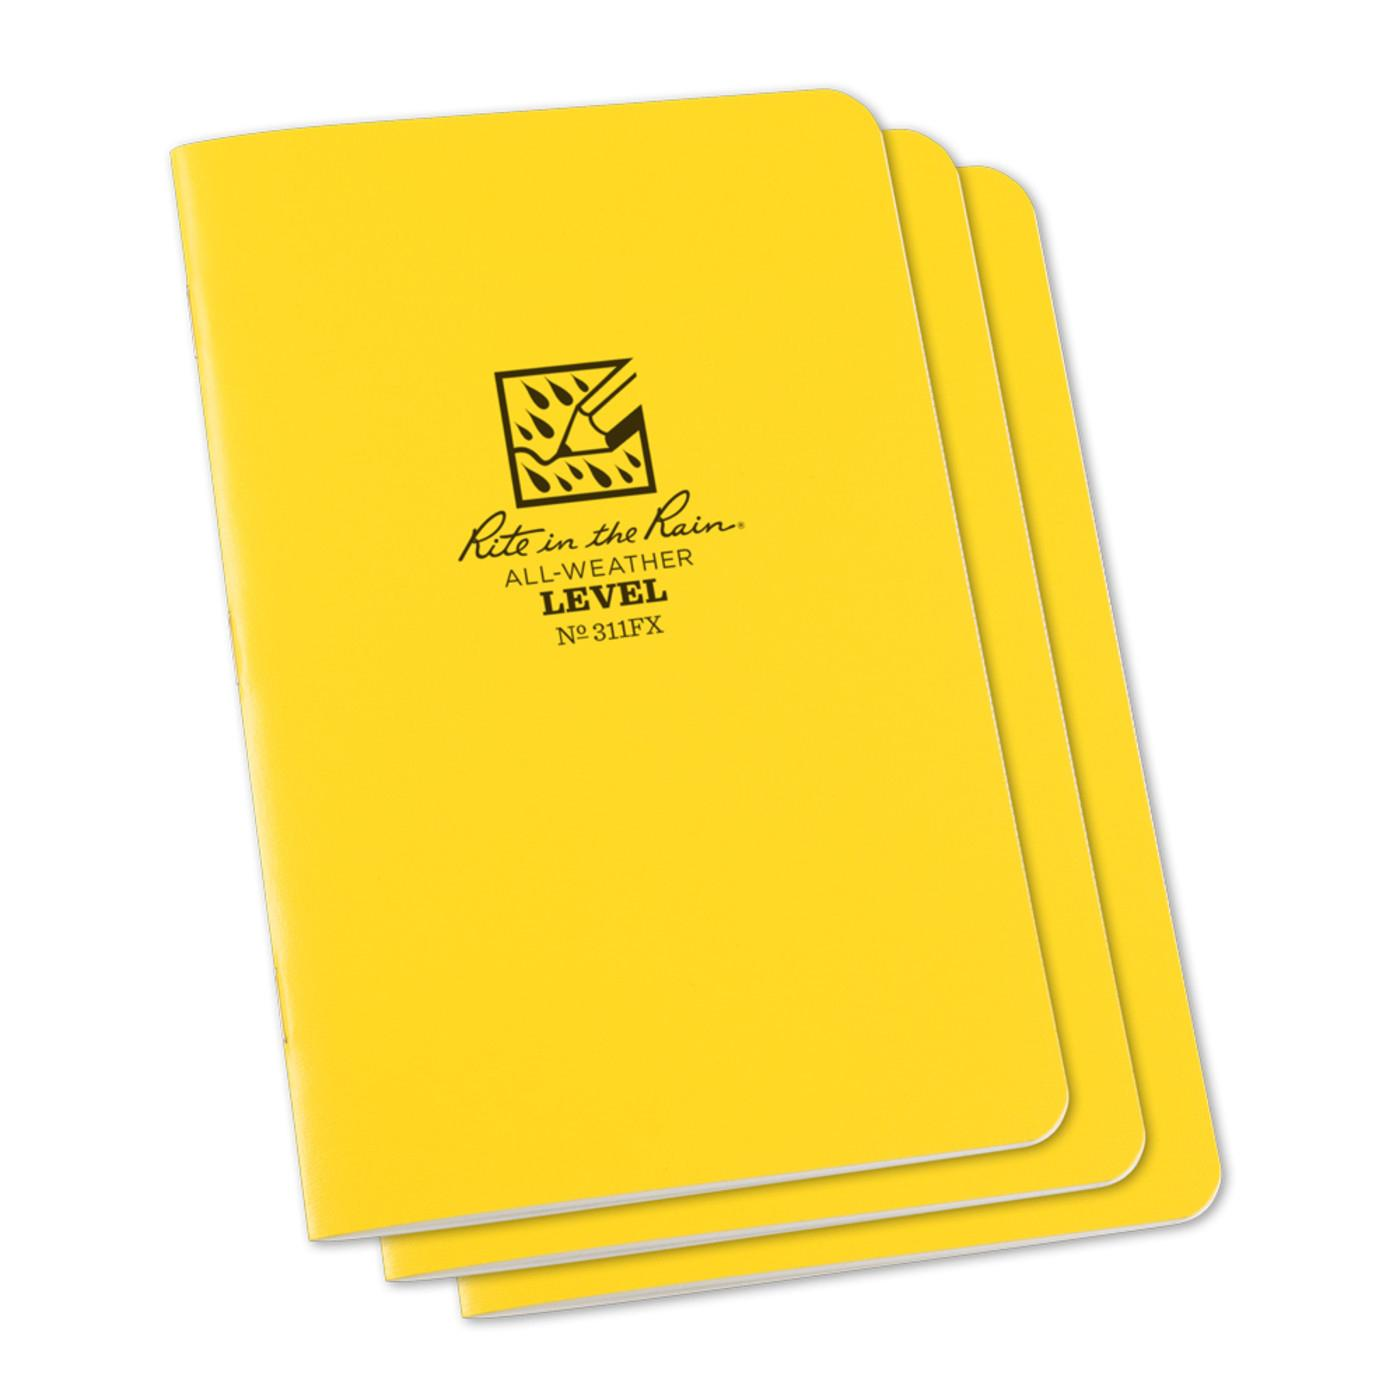 "Rite in the Rain Yellow 45/8""x7"" Level Stapled Notebook"